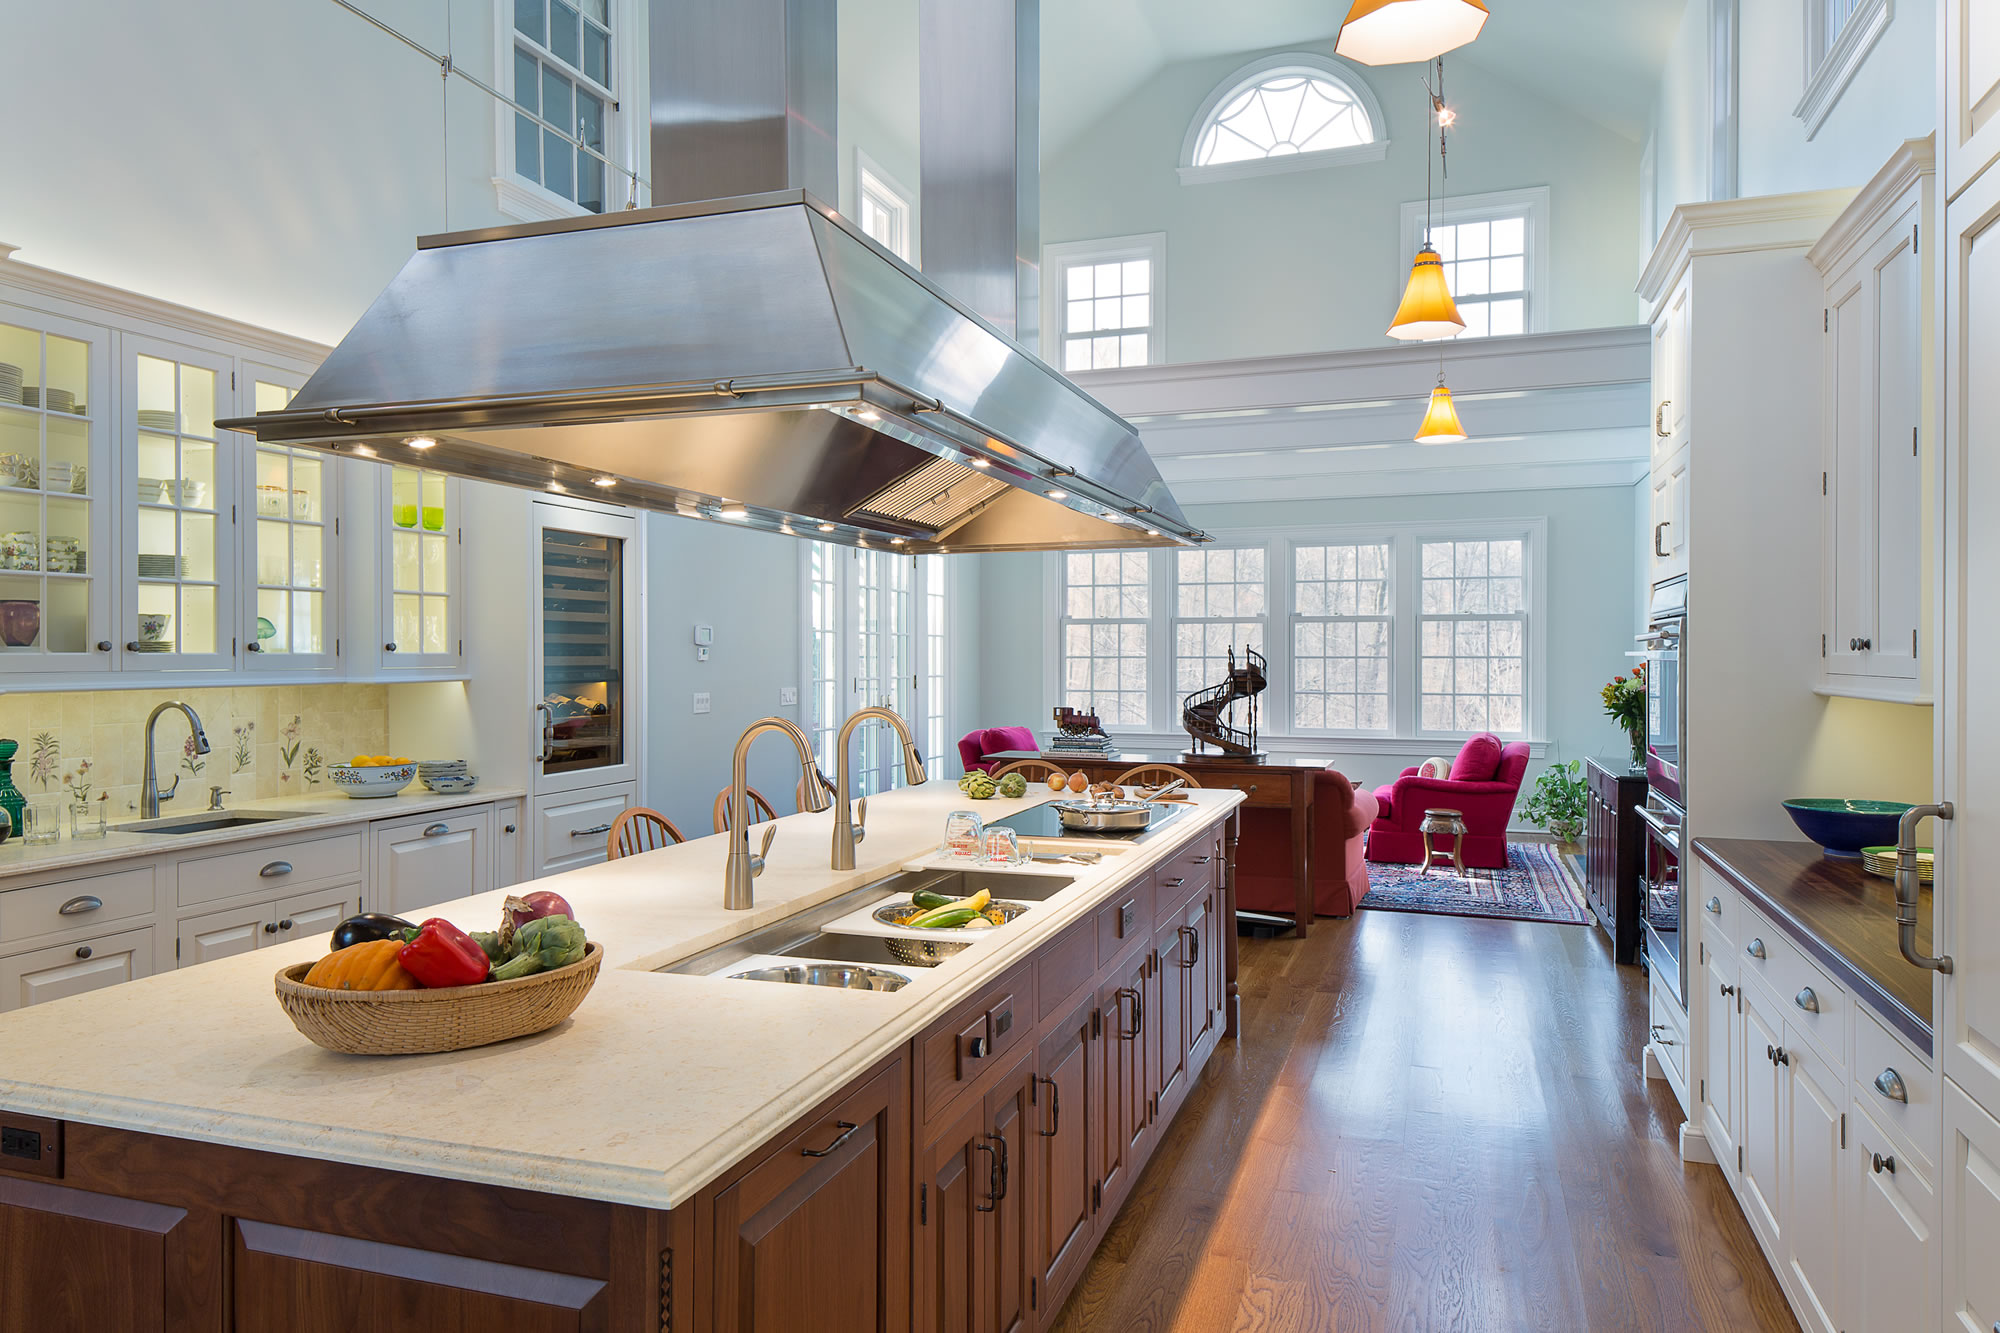 home design & roomscapes in vermont | designs for living